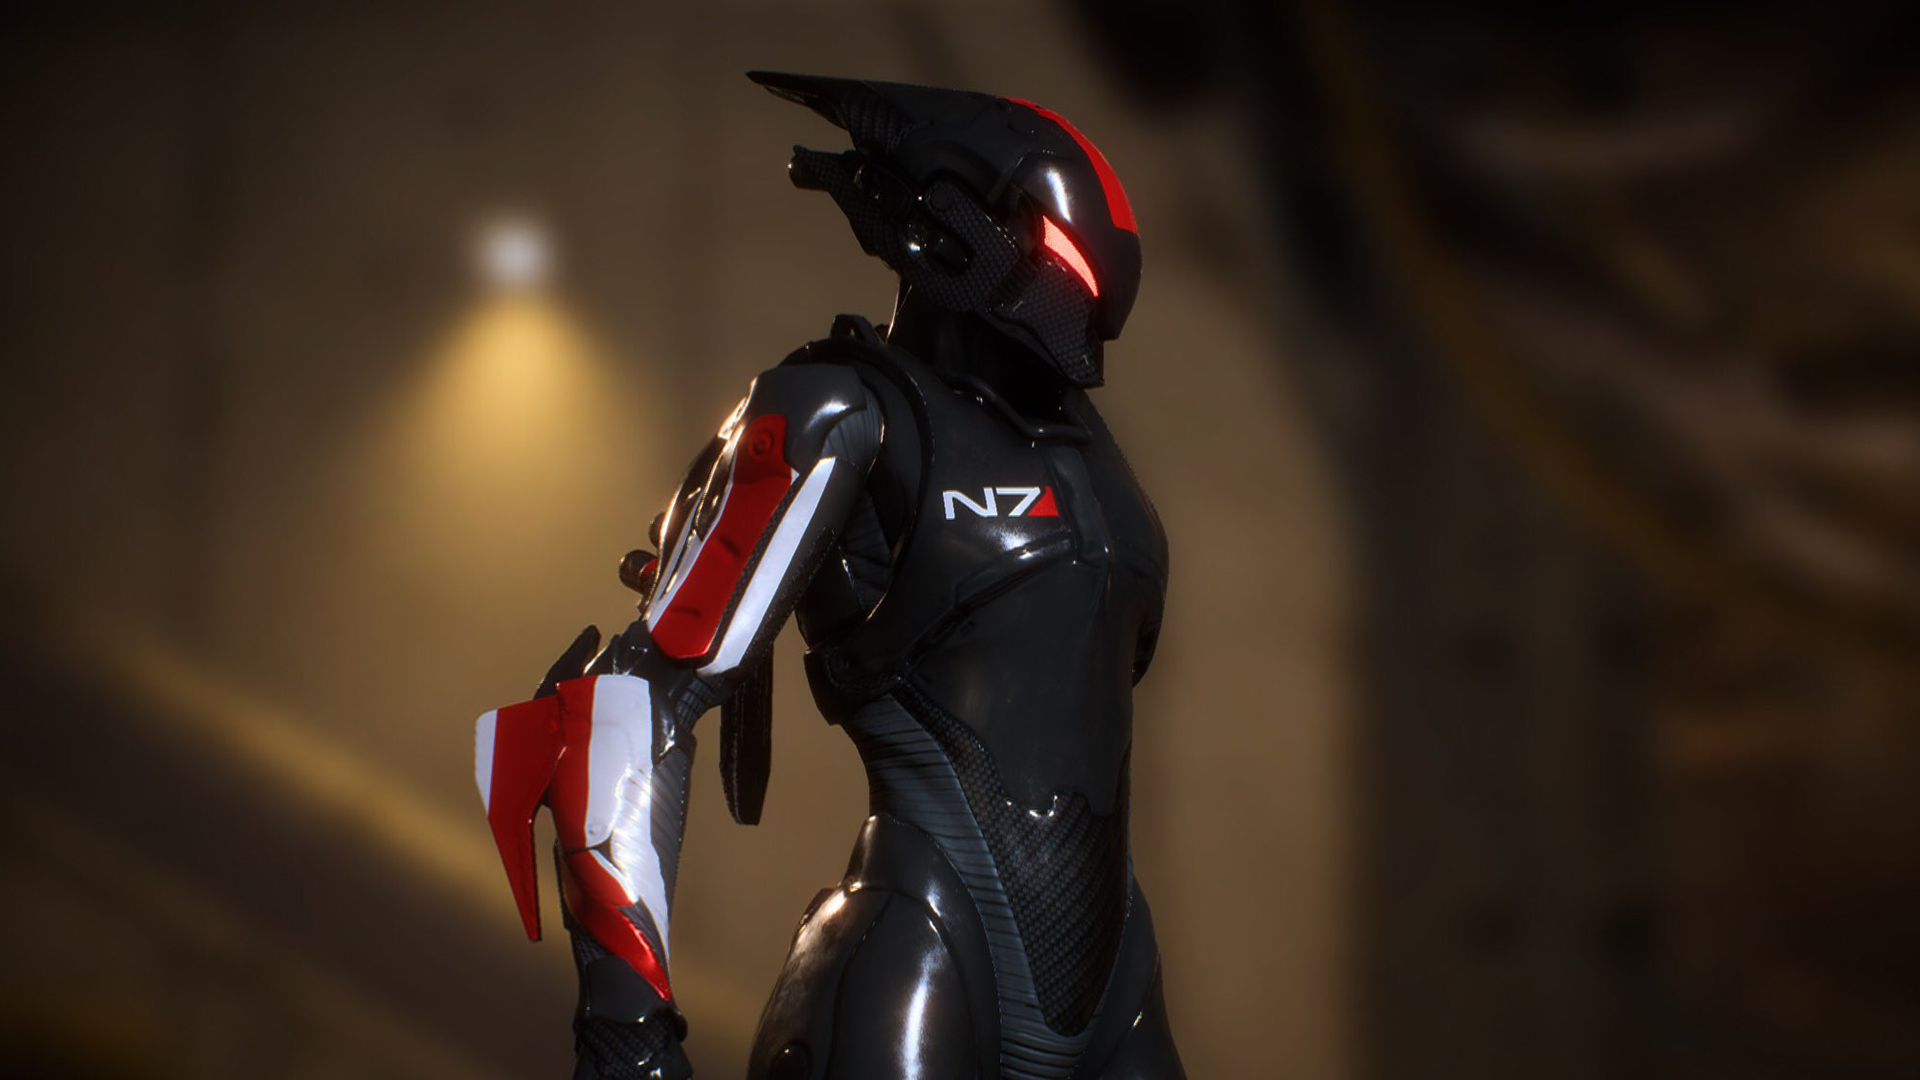 Anthem Will Have Mass Effect Armour Pcgamesn N7 is an armor set consisting of four pieces. anthem will have mass effect armour